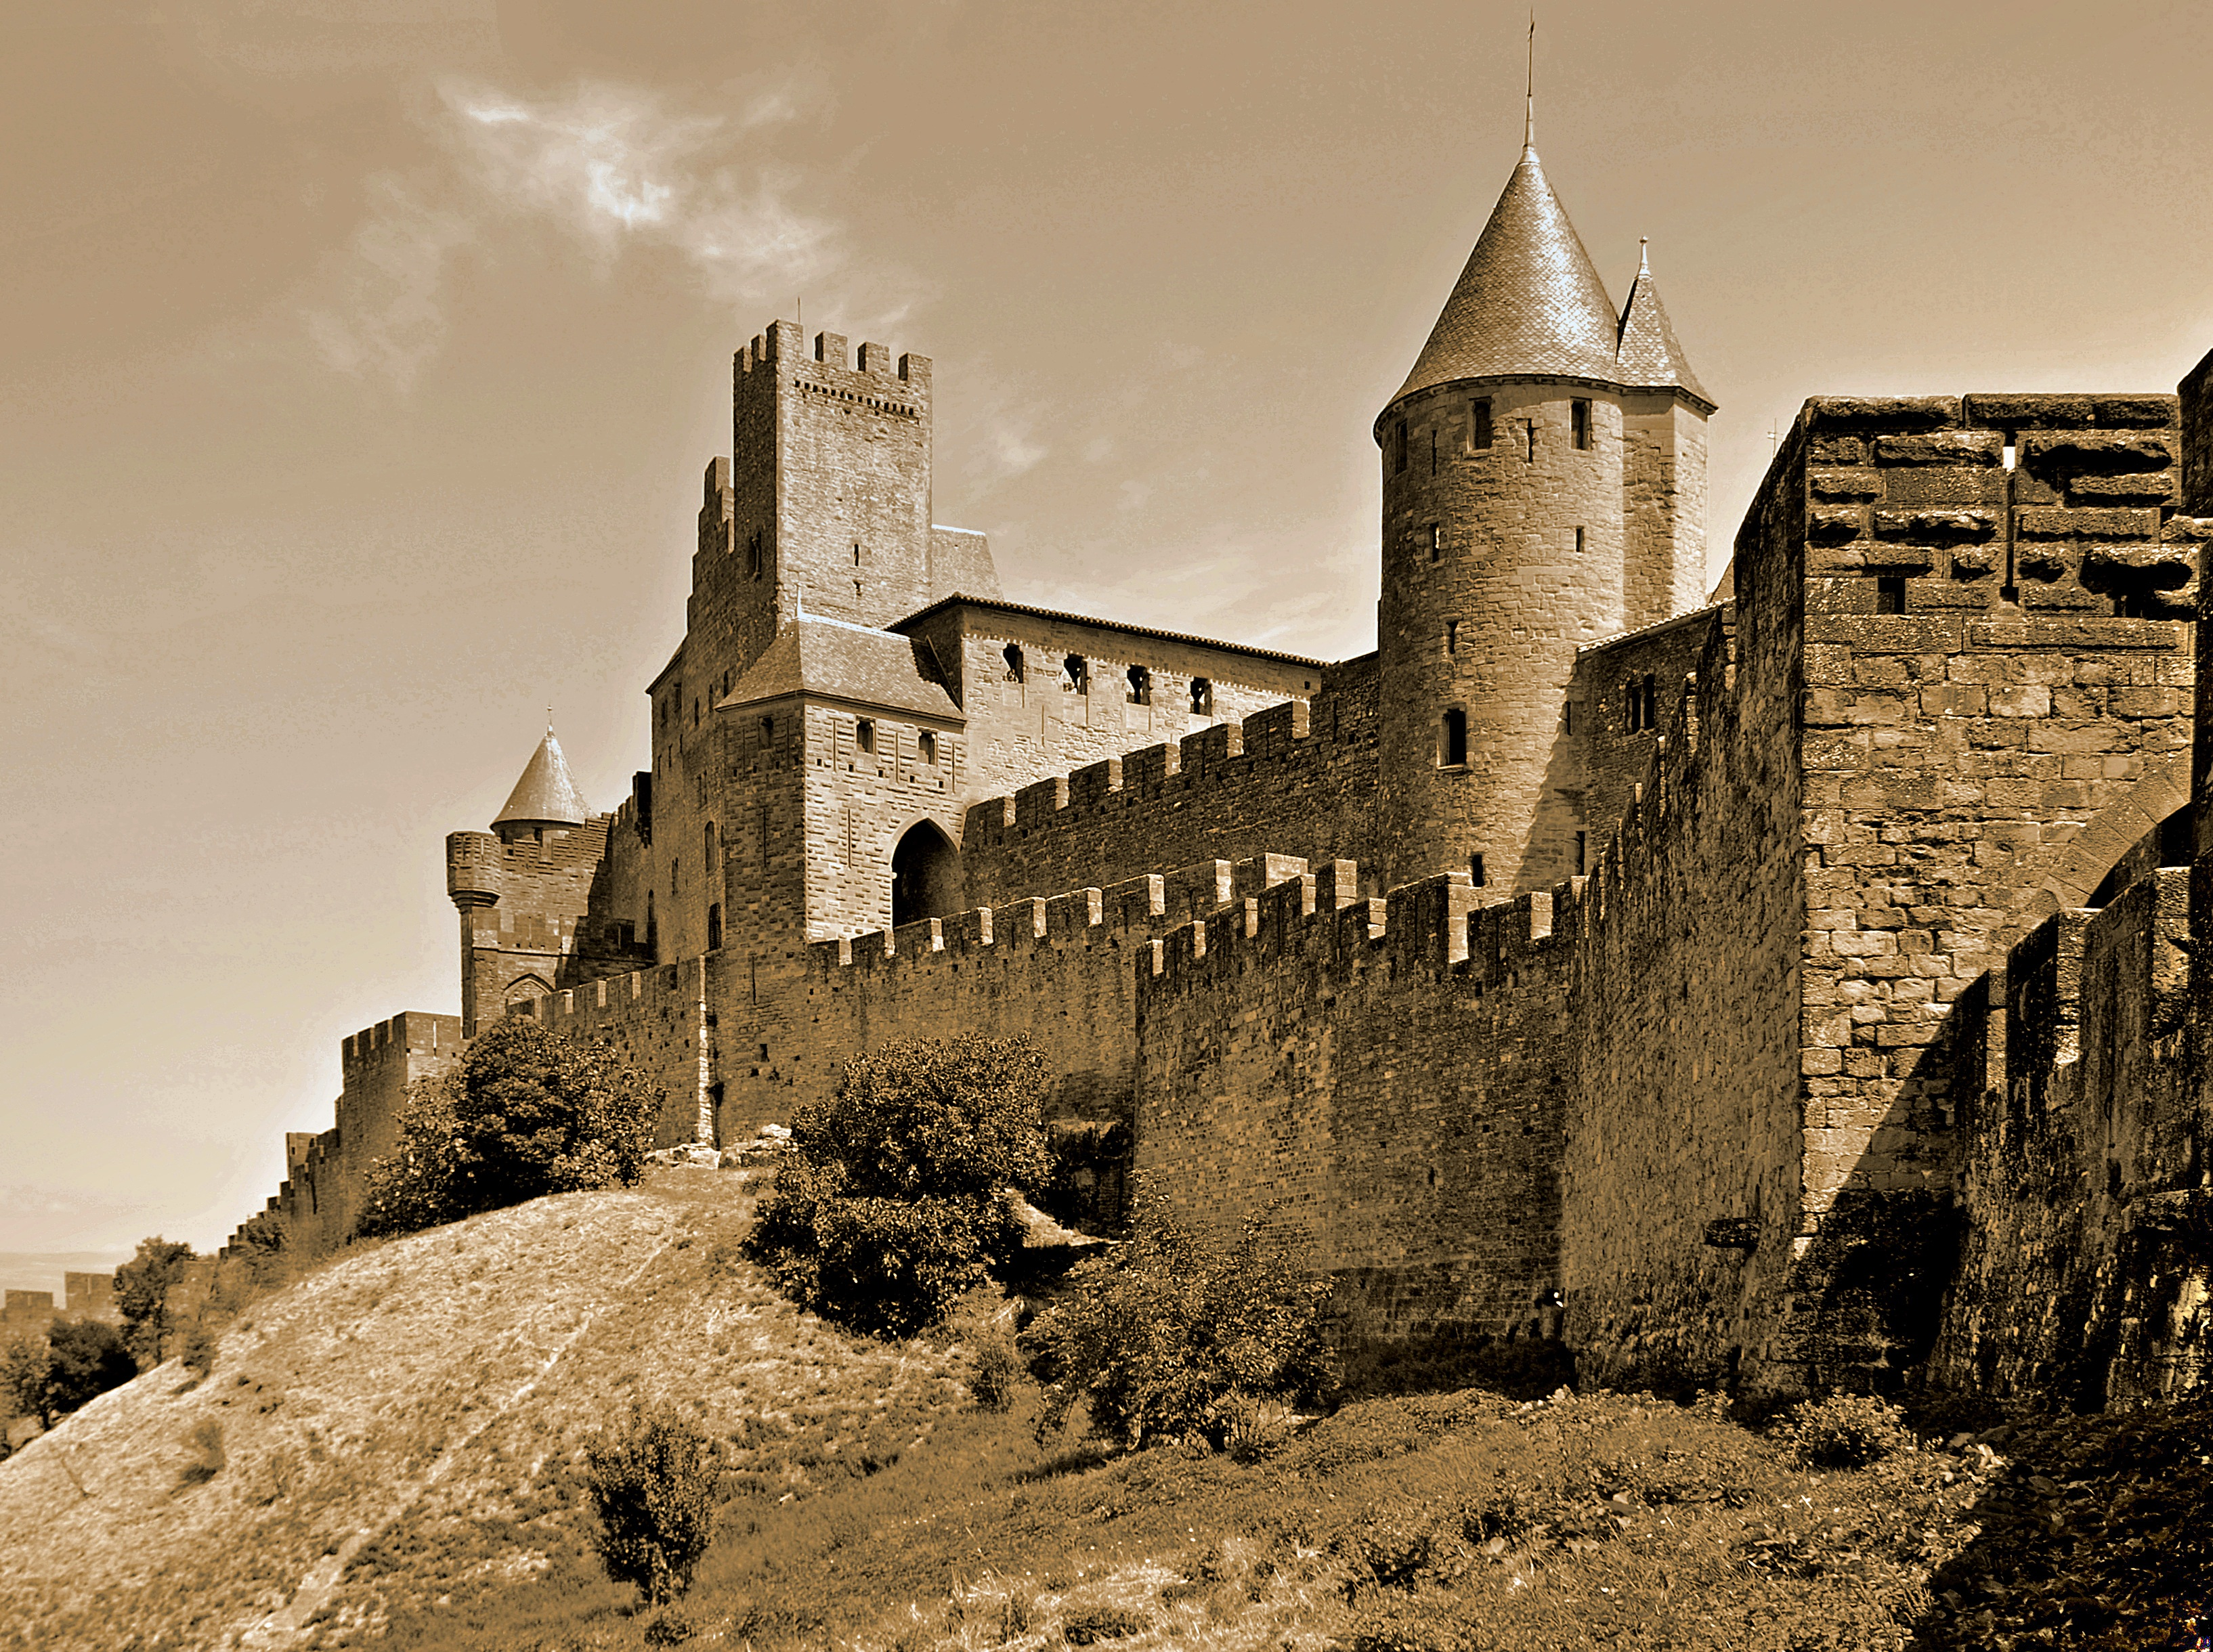 Photo of the Medieval French City of Carcassonne.